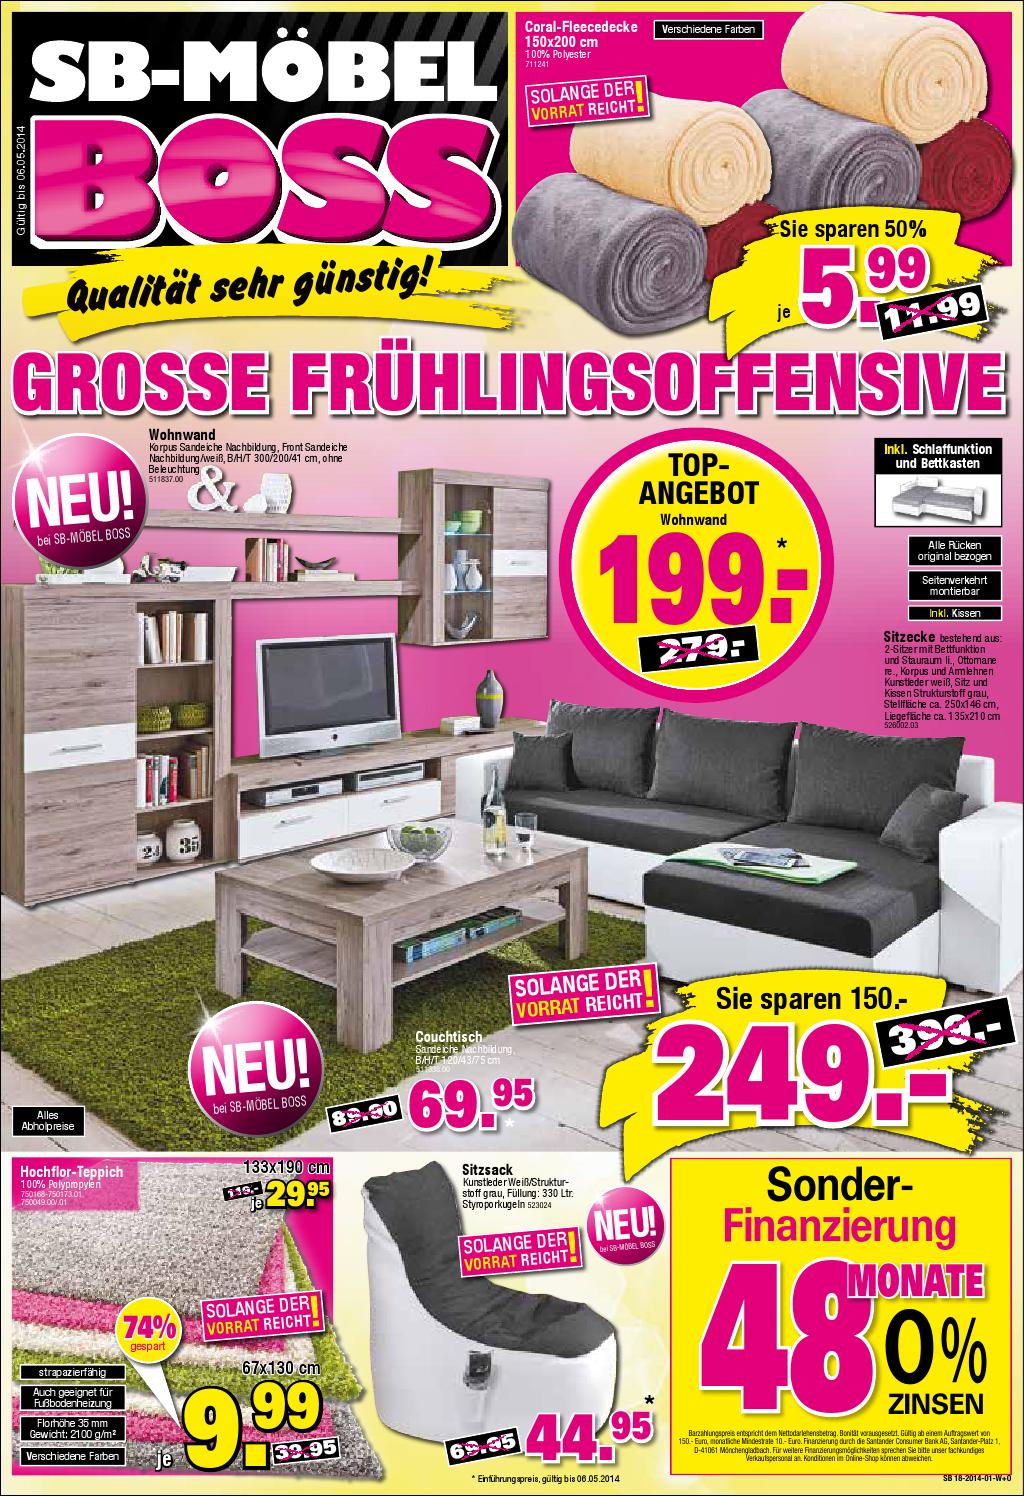 Möbel Boss Komplett Schlafzimmer Mobel Boss By Catalogofree - Issuu